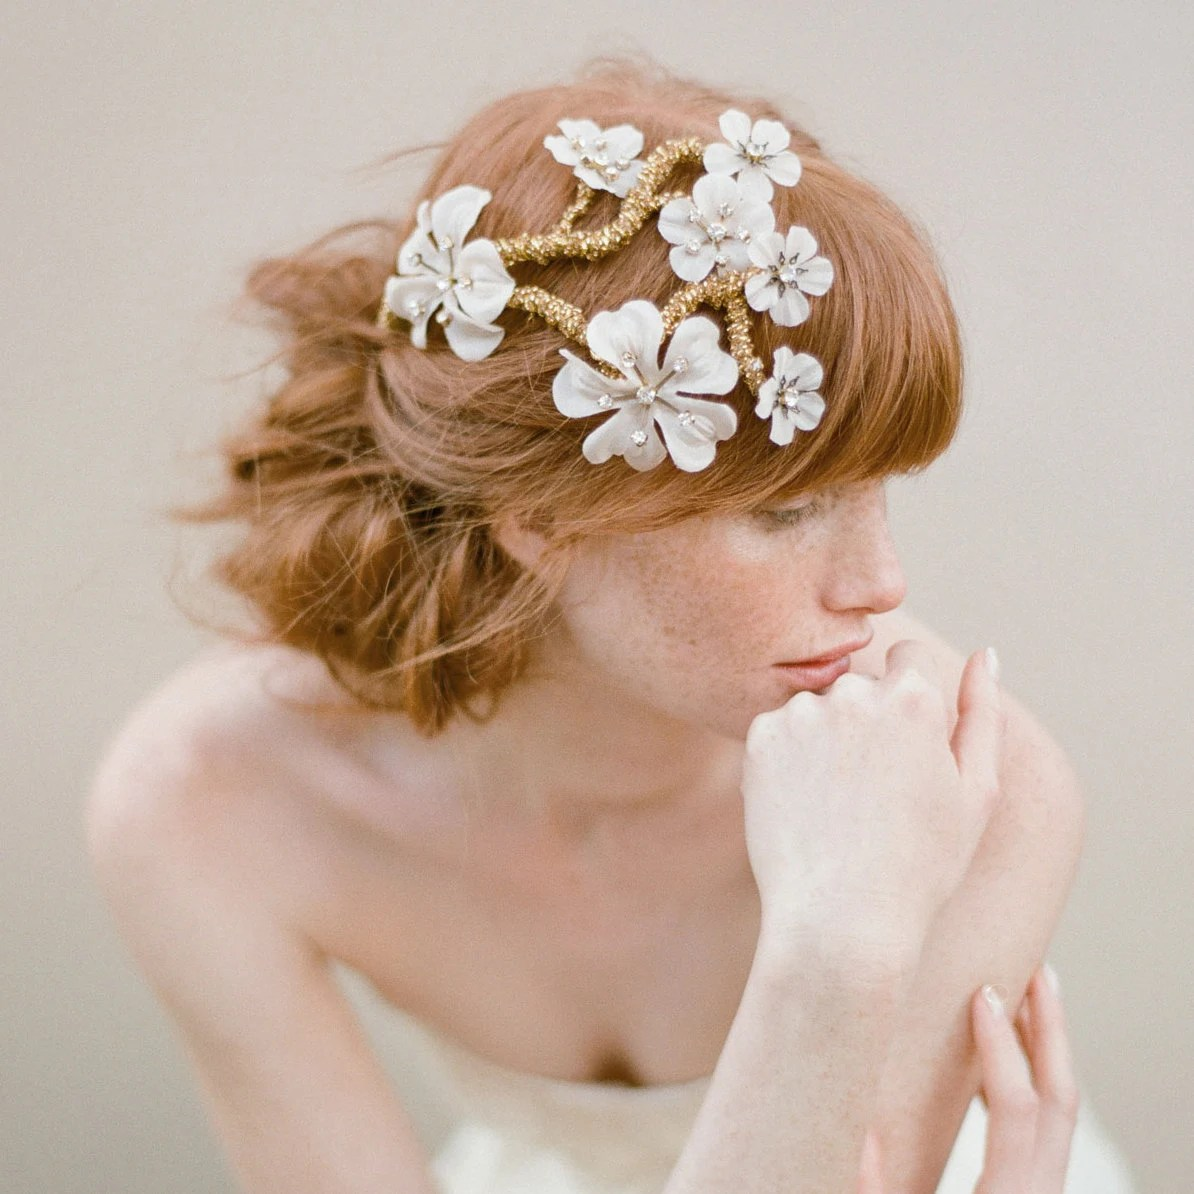 Bridal hair flowers, silk flower, hair vine comb, Apple blossom branch headpiece - Style 345